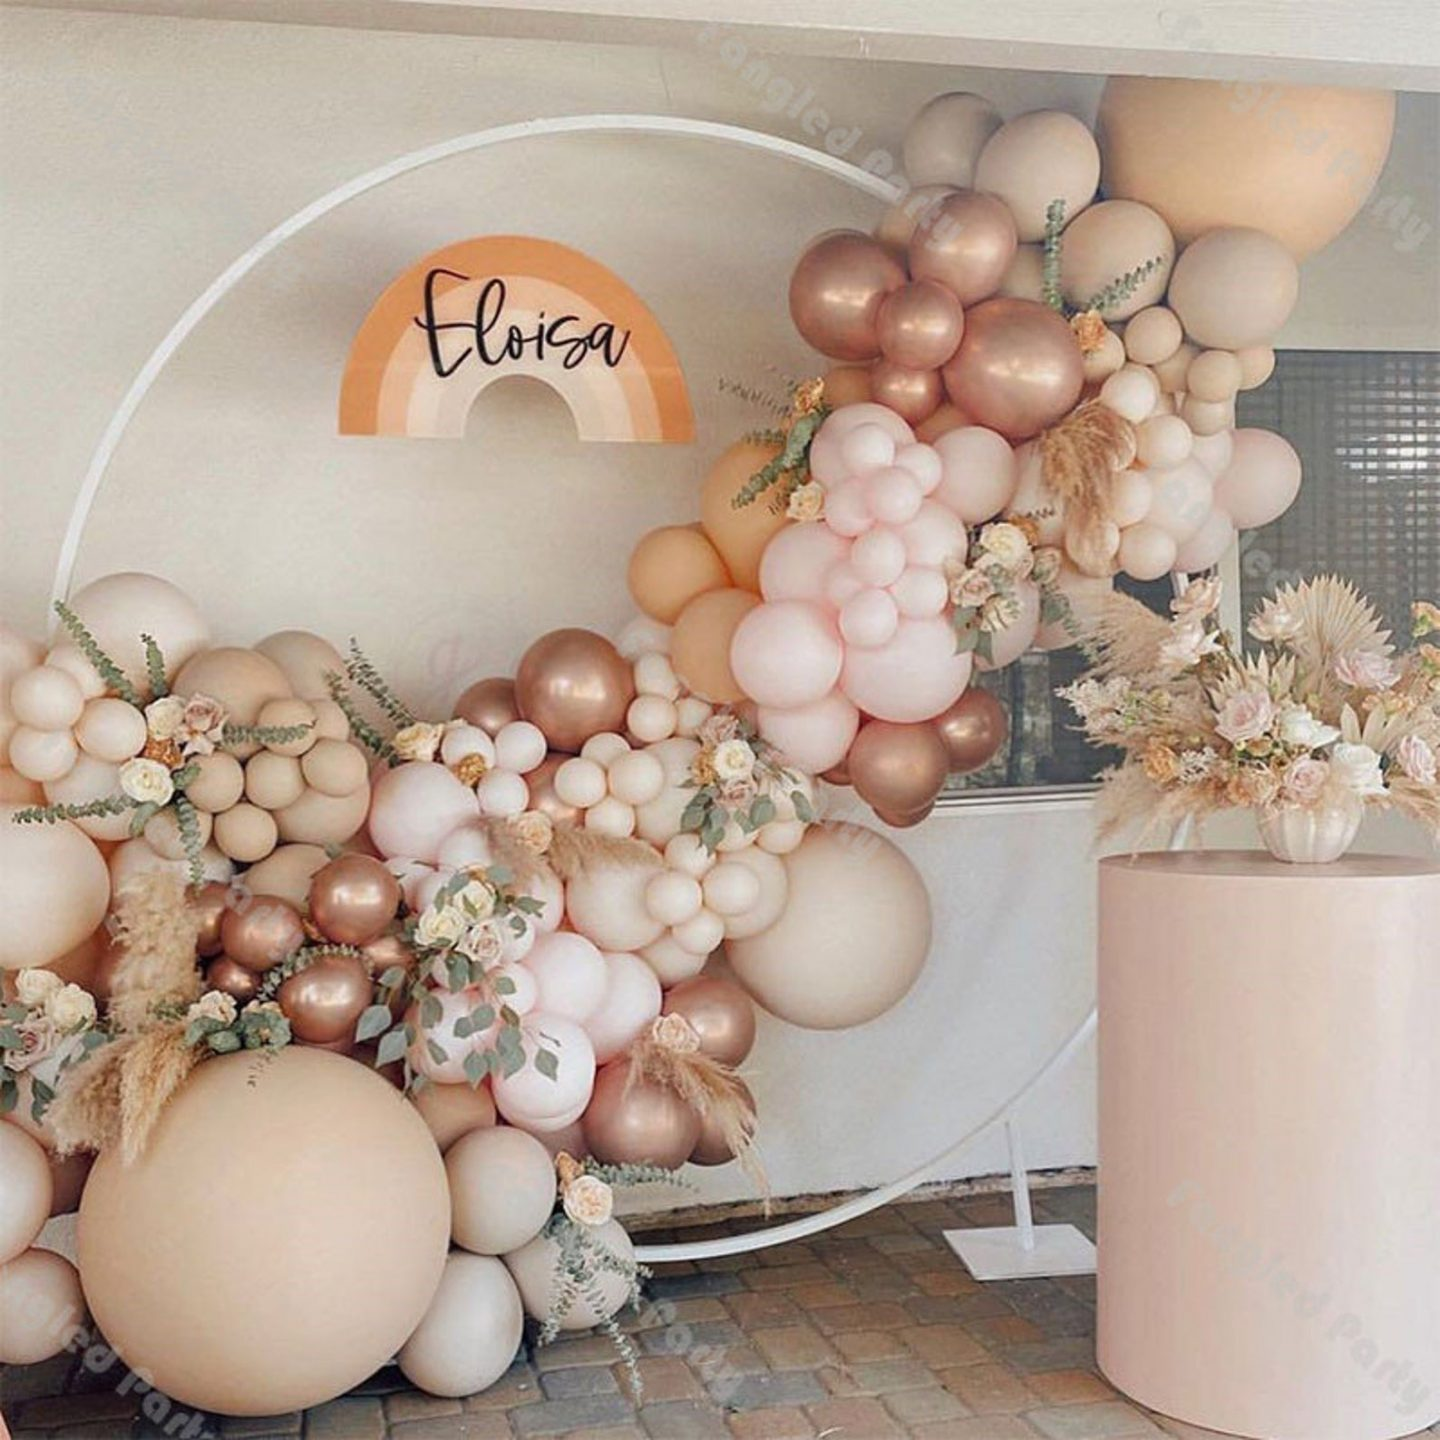 Balloon garland in cream, rose gold and pink